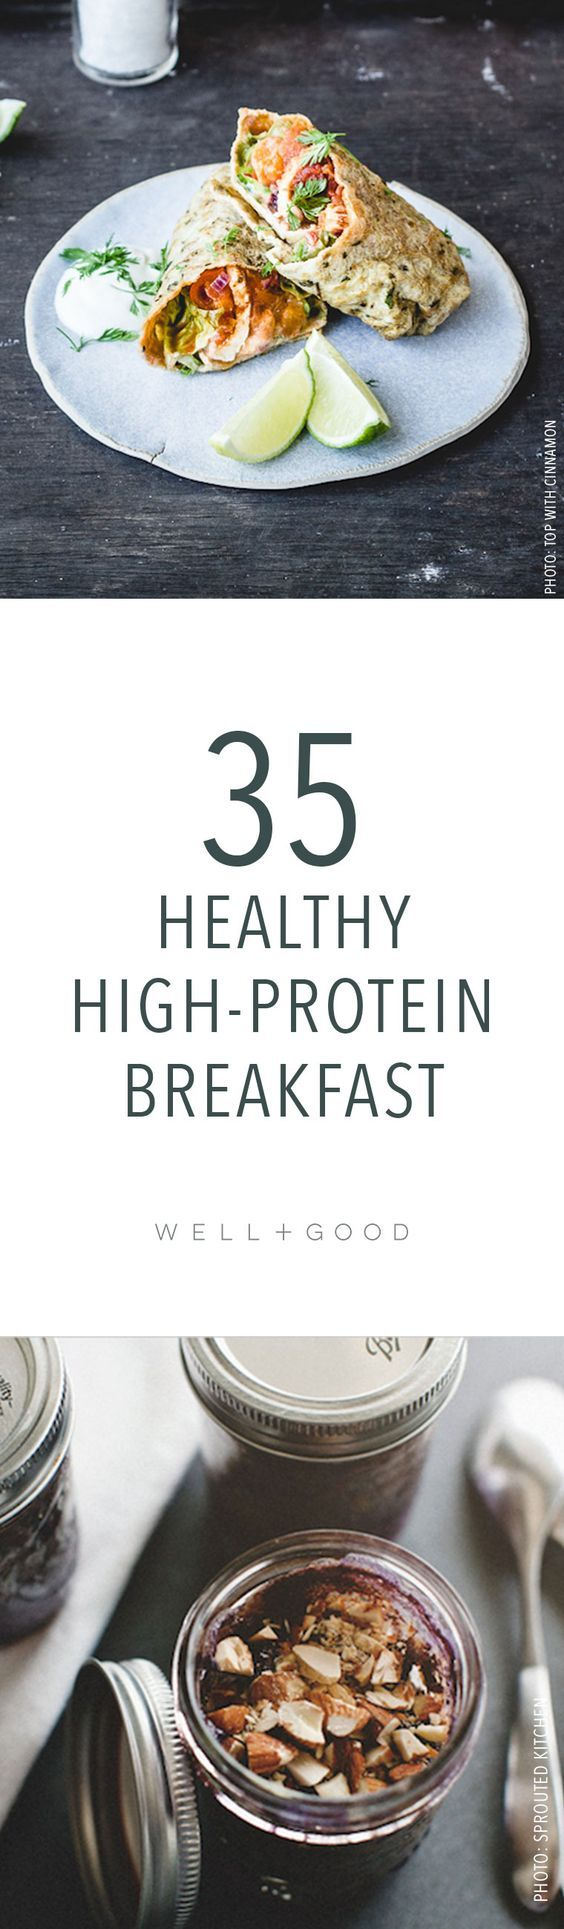 35 high - protein healthy breakfast ideas